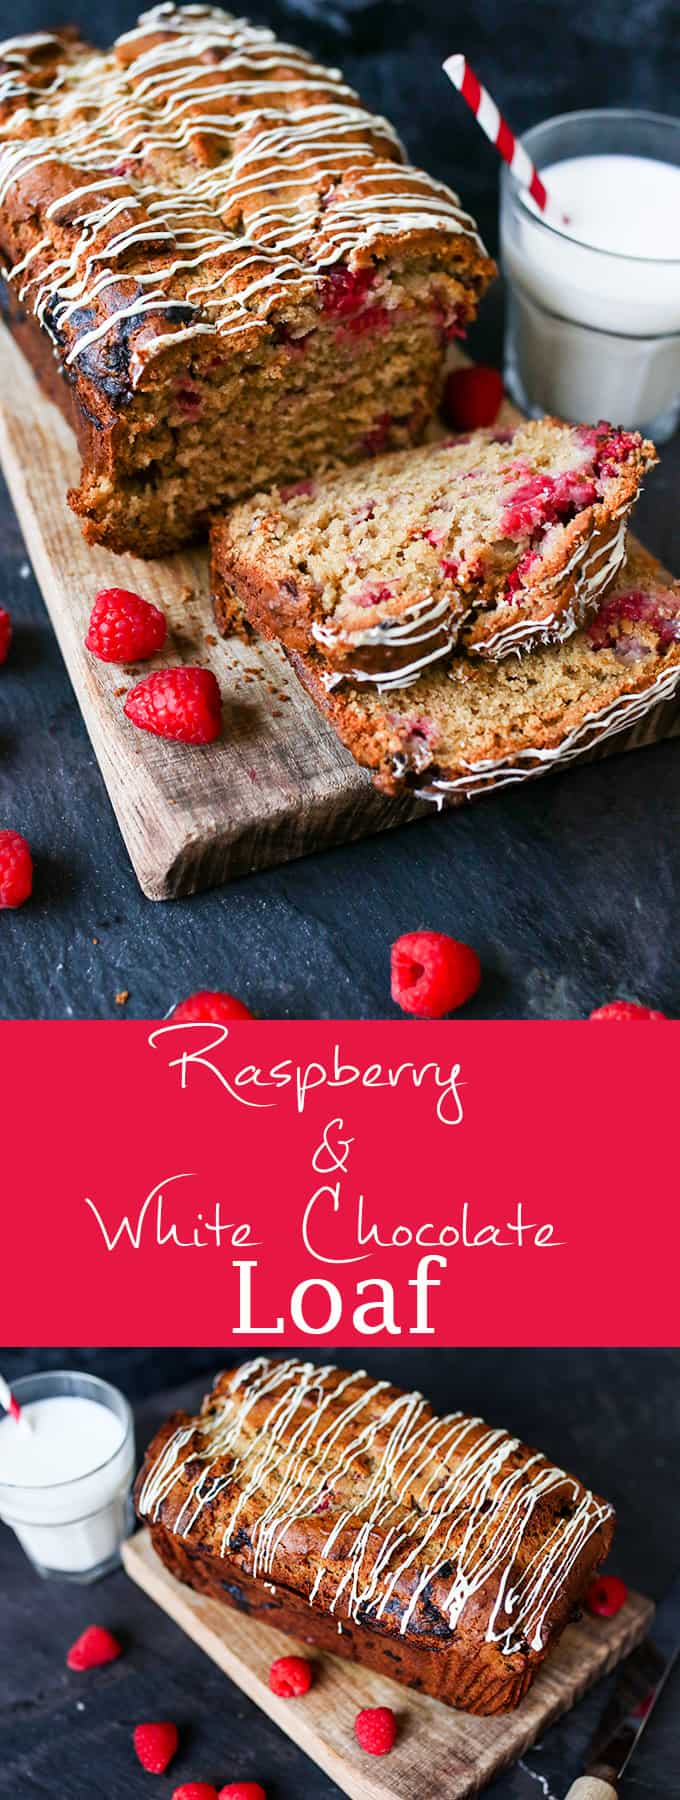 Raspberry and white chocolate loaf - no mixer required for this moist and fruity cake.